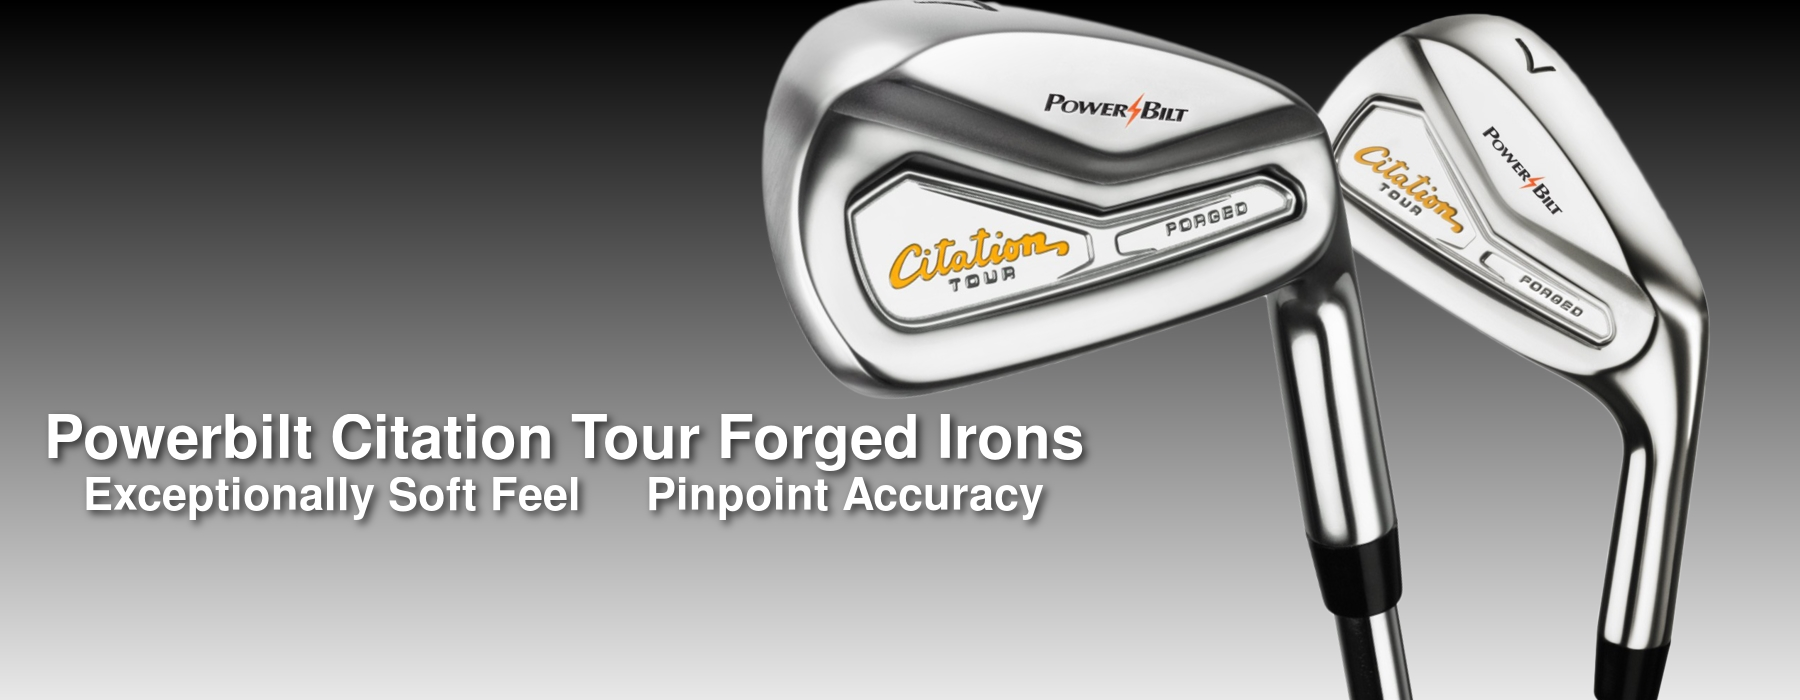 Powerbilt Citation Tour Forged Irons